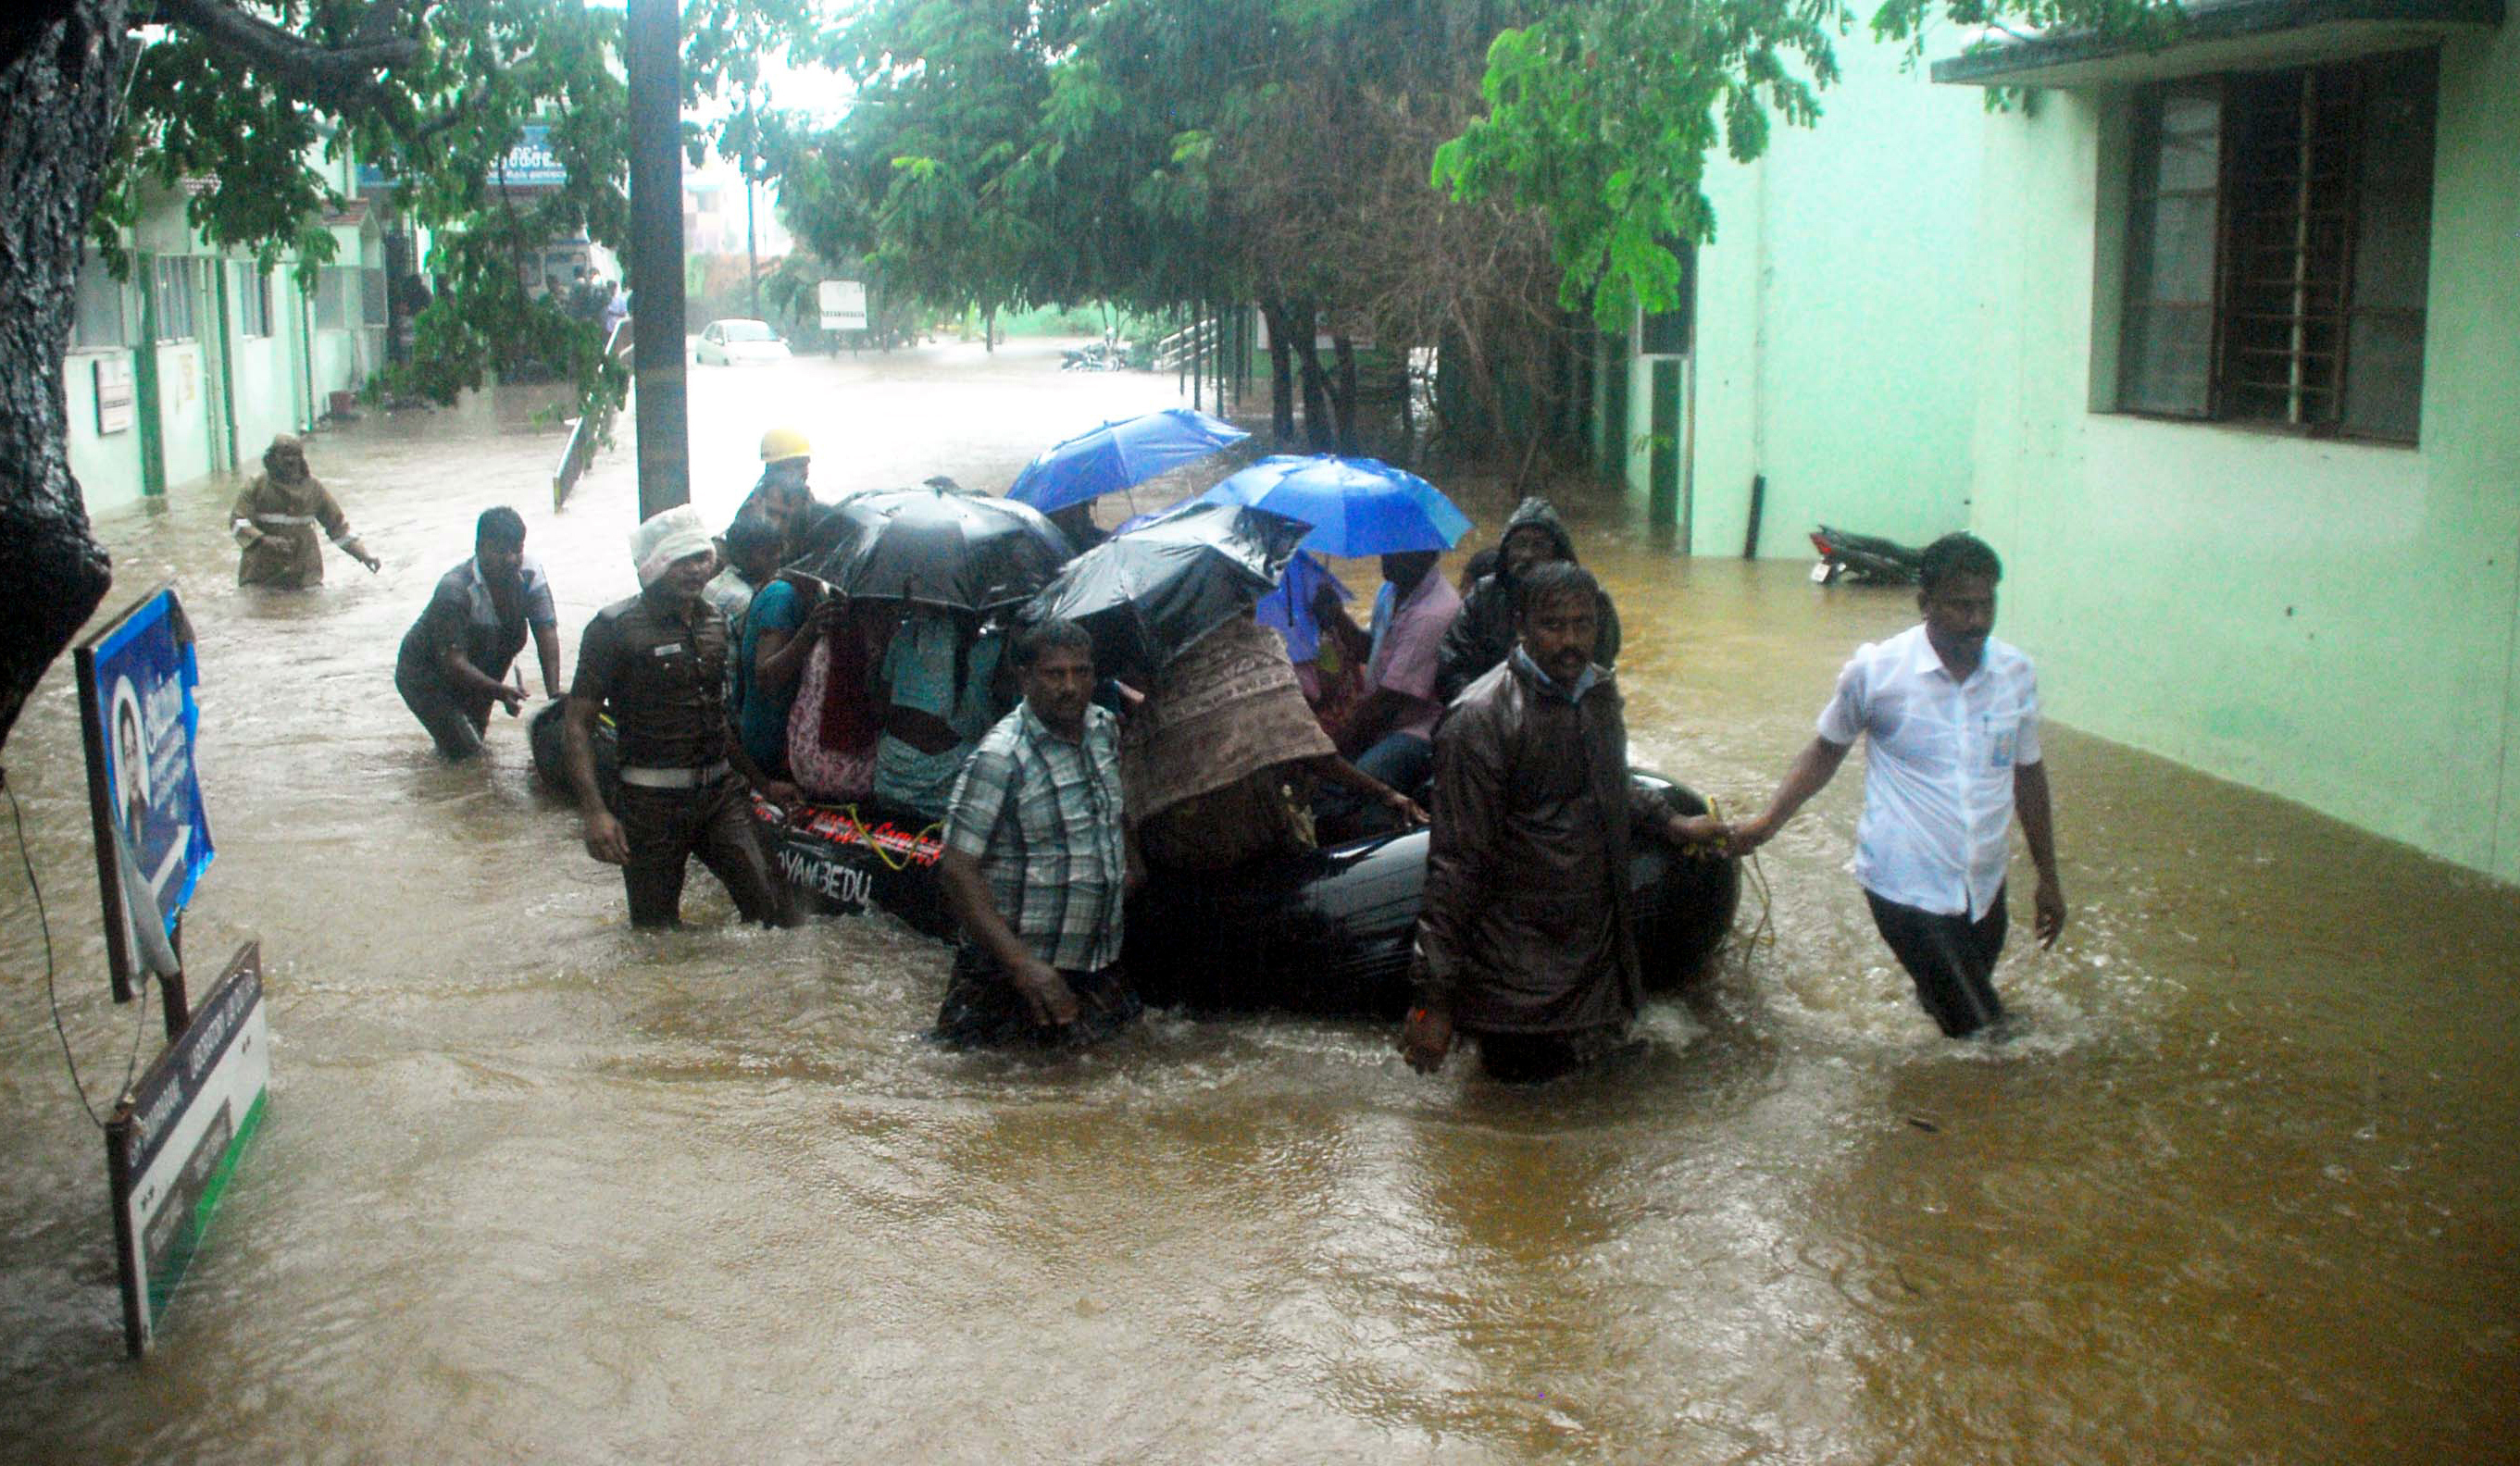 Rescue workers and volunteers use an inflatable boat to take residents through floodwaters in Chennai, India, on Dec. 1, 2015, during a downpour of heavy rain in the southern Indian city